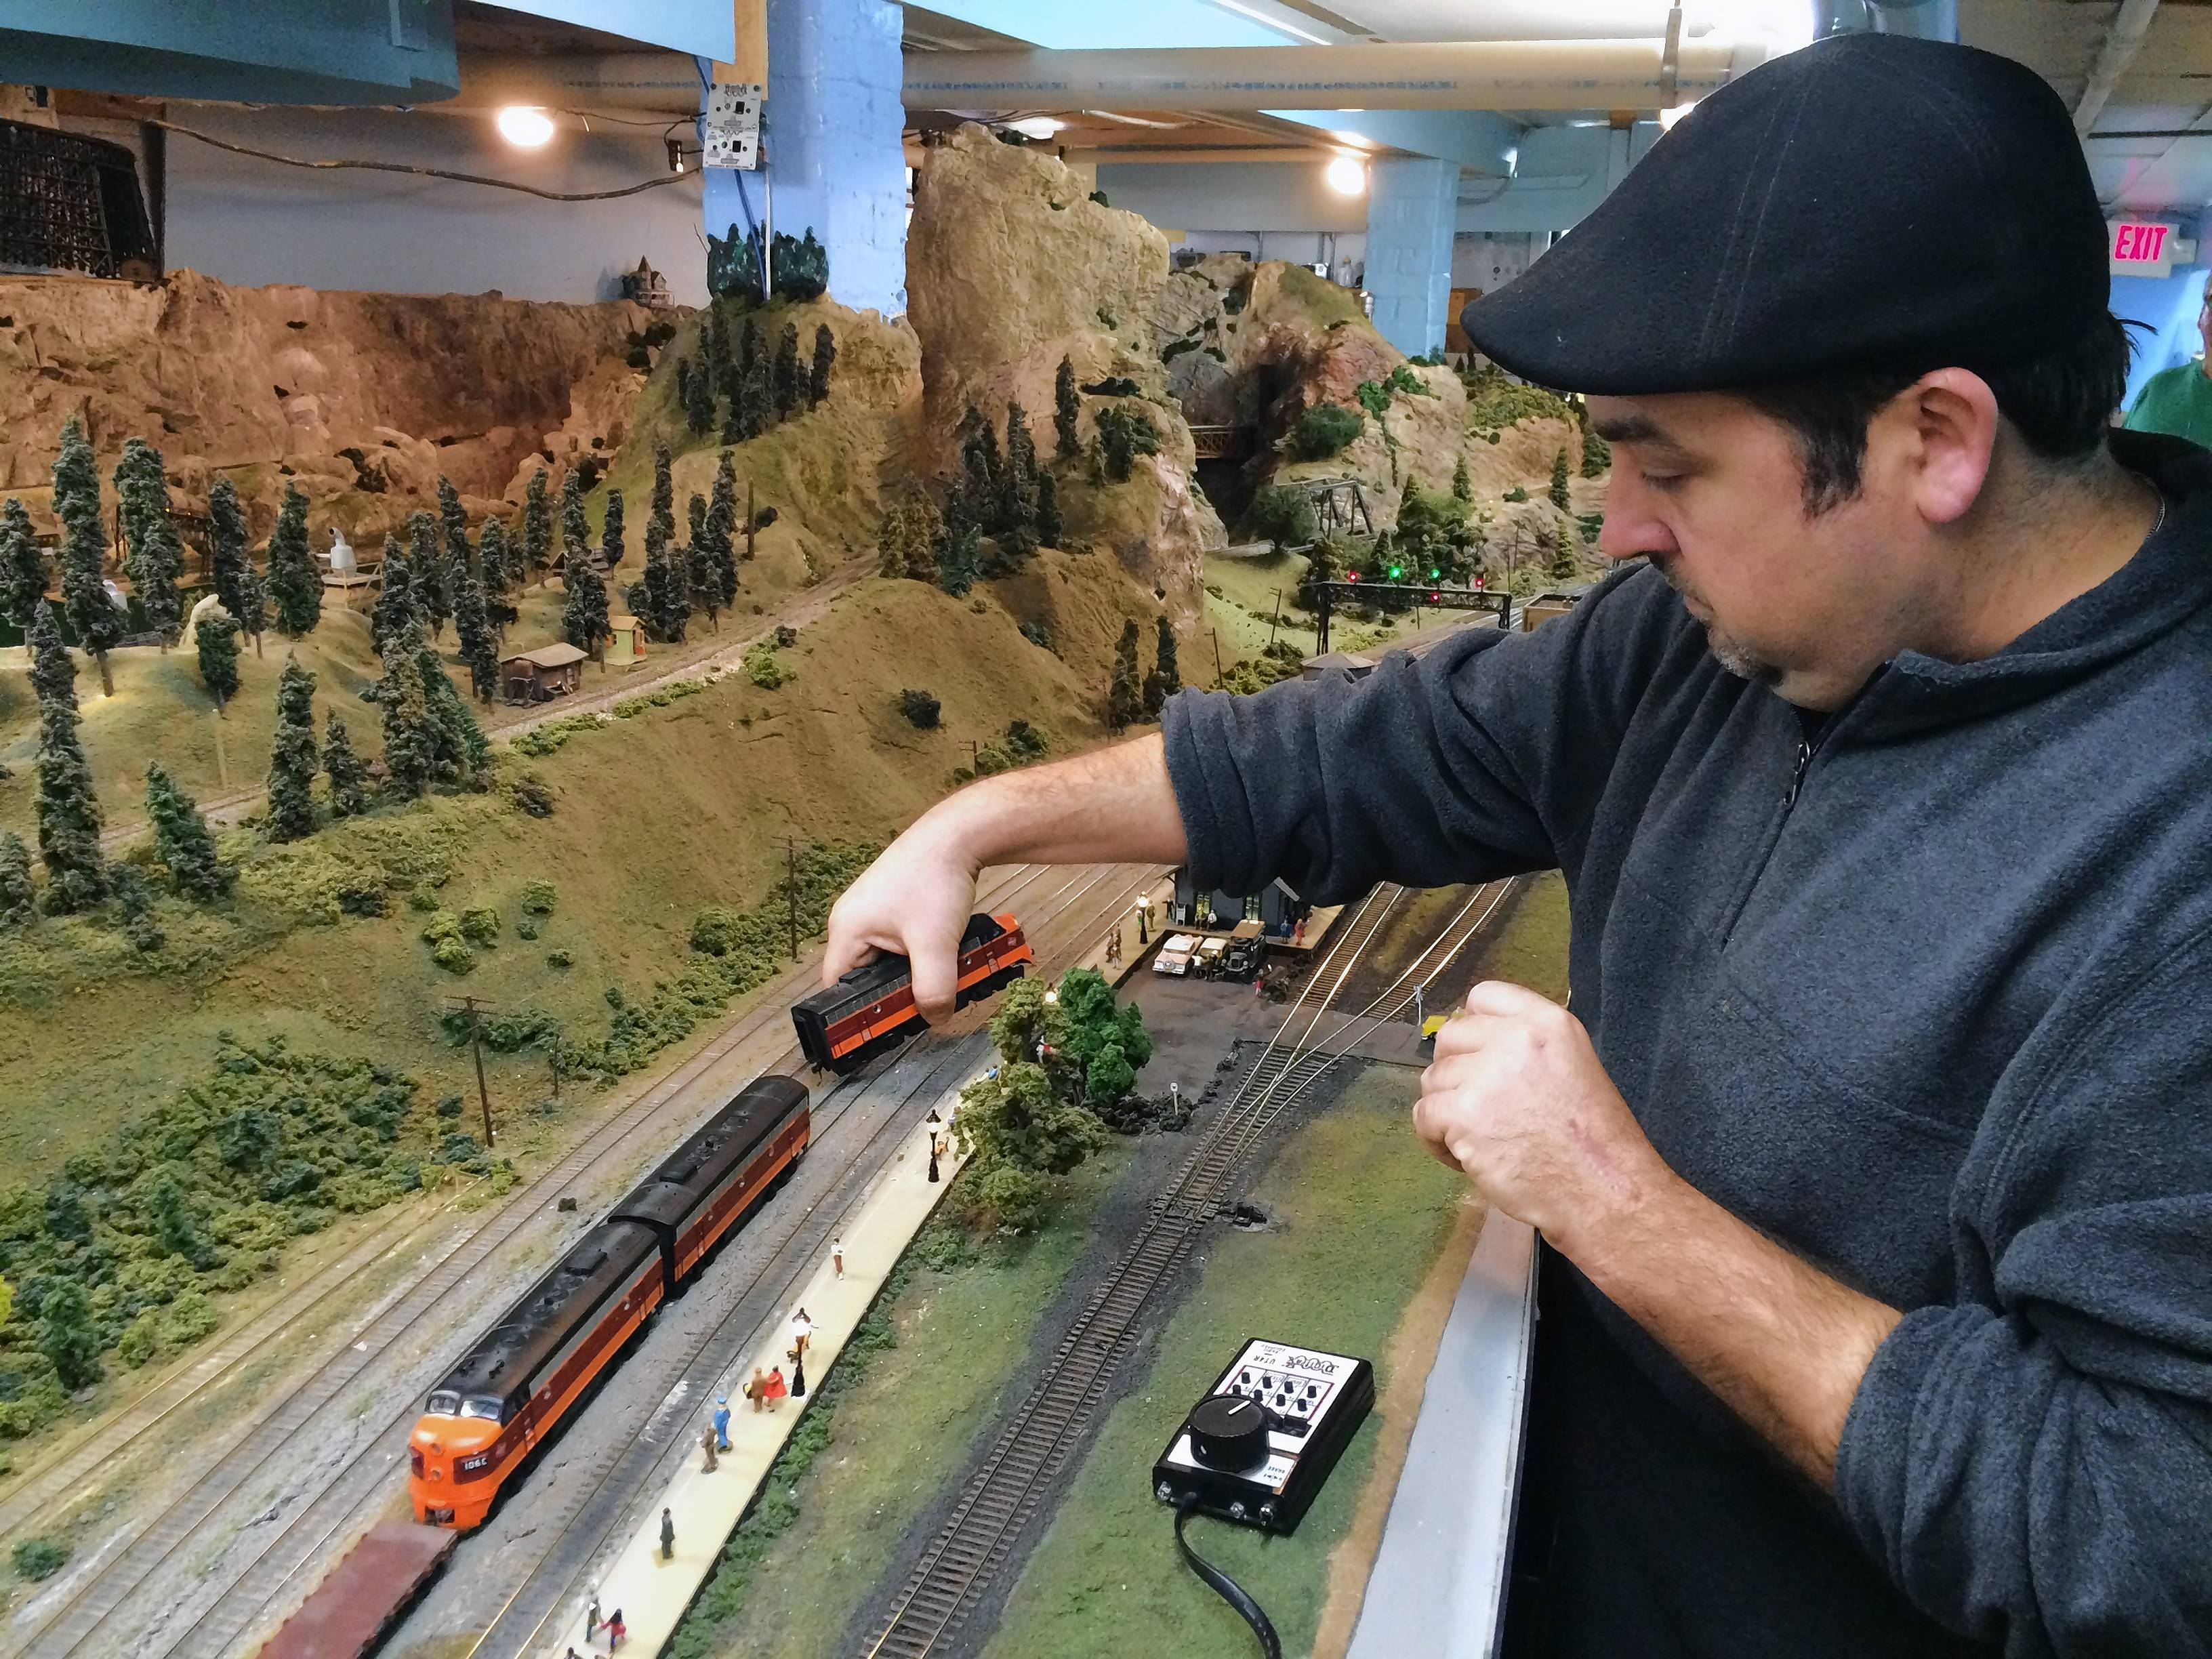 Trent Blasco of Buffalo Grove and other members of the Lake County Model Railroad Club may be forced to leave the Wauconda basement they've called home for 44 years, leaving their future in doubt.